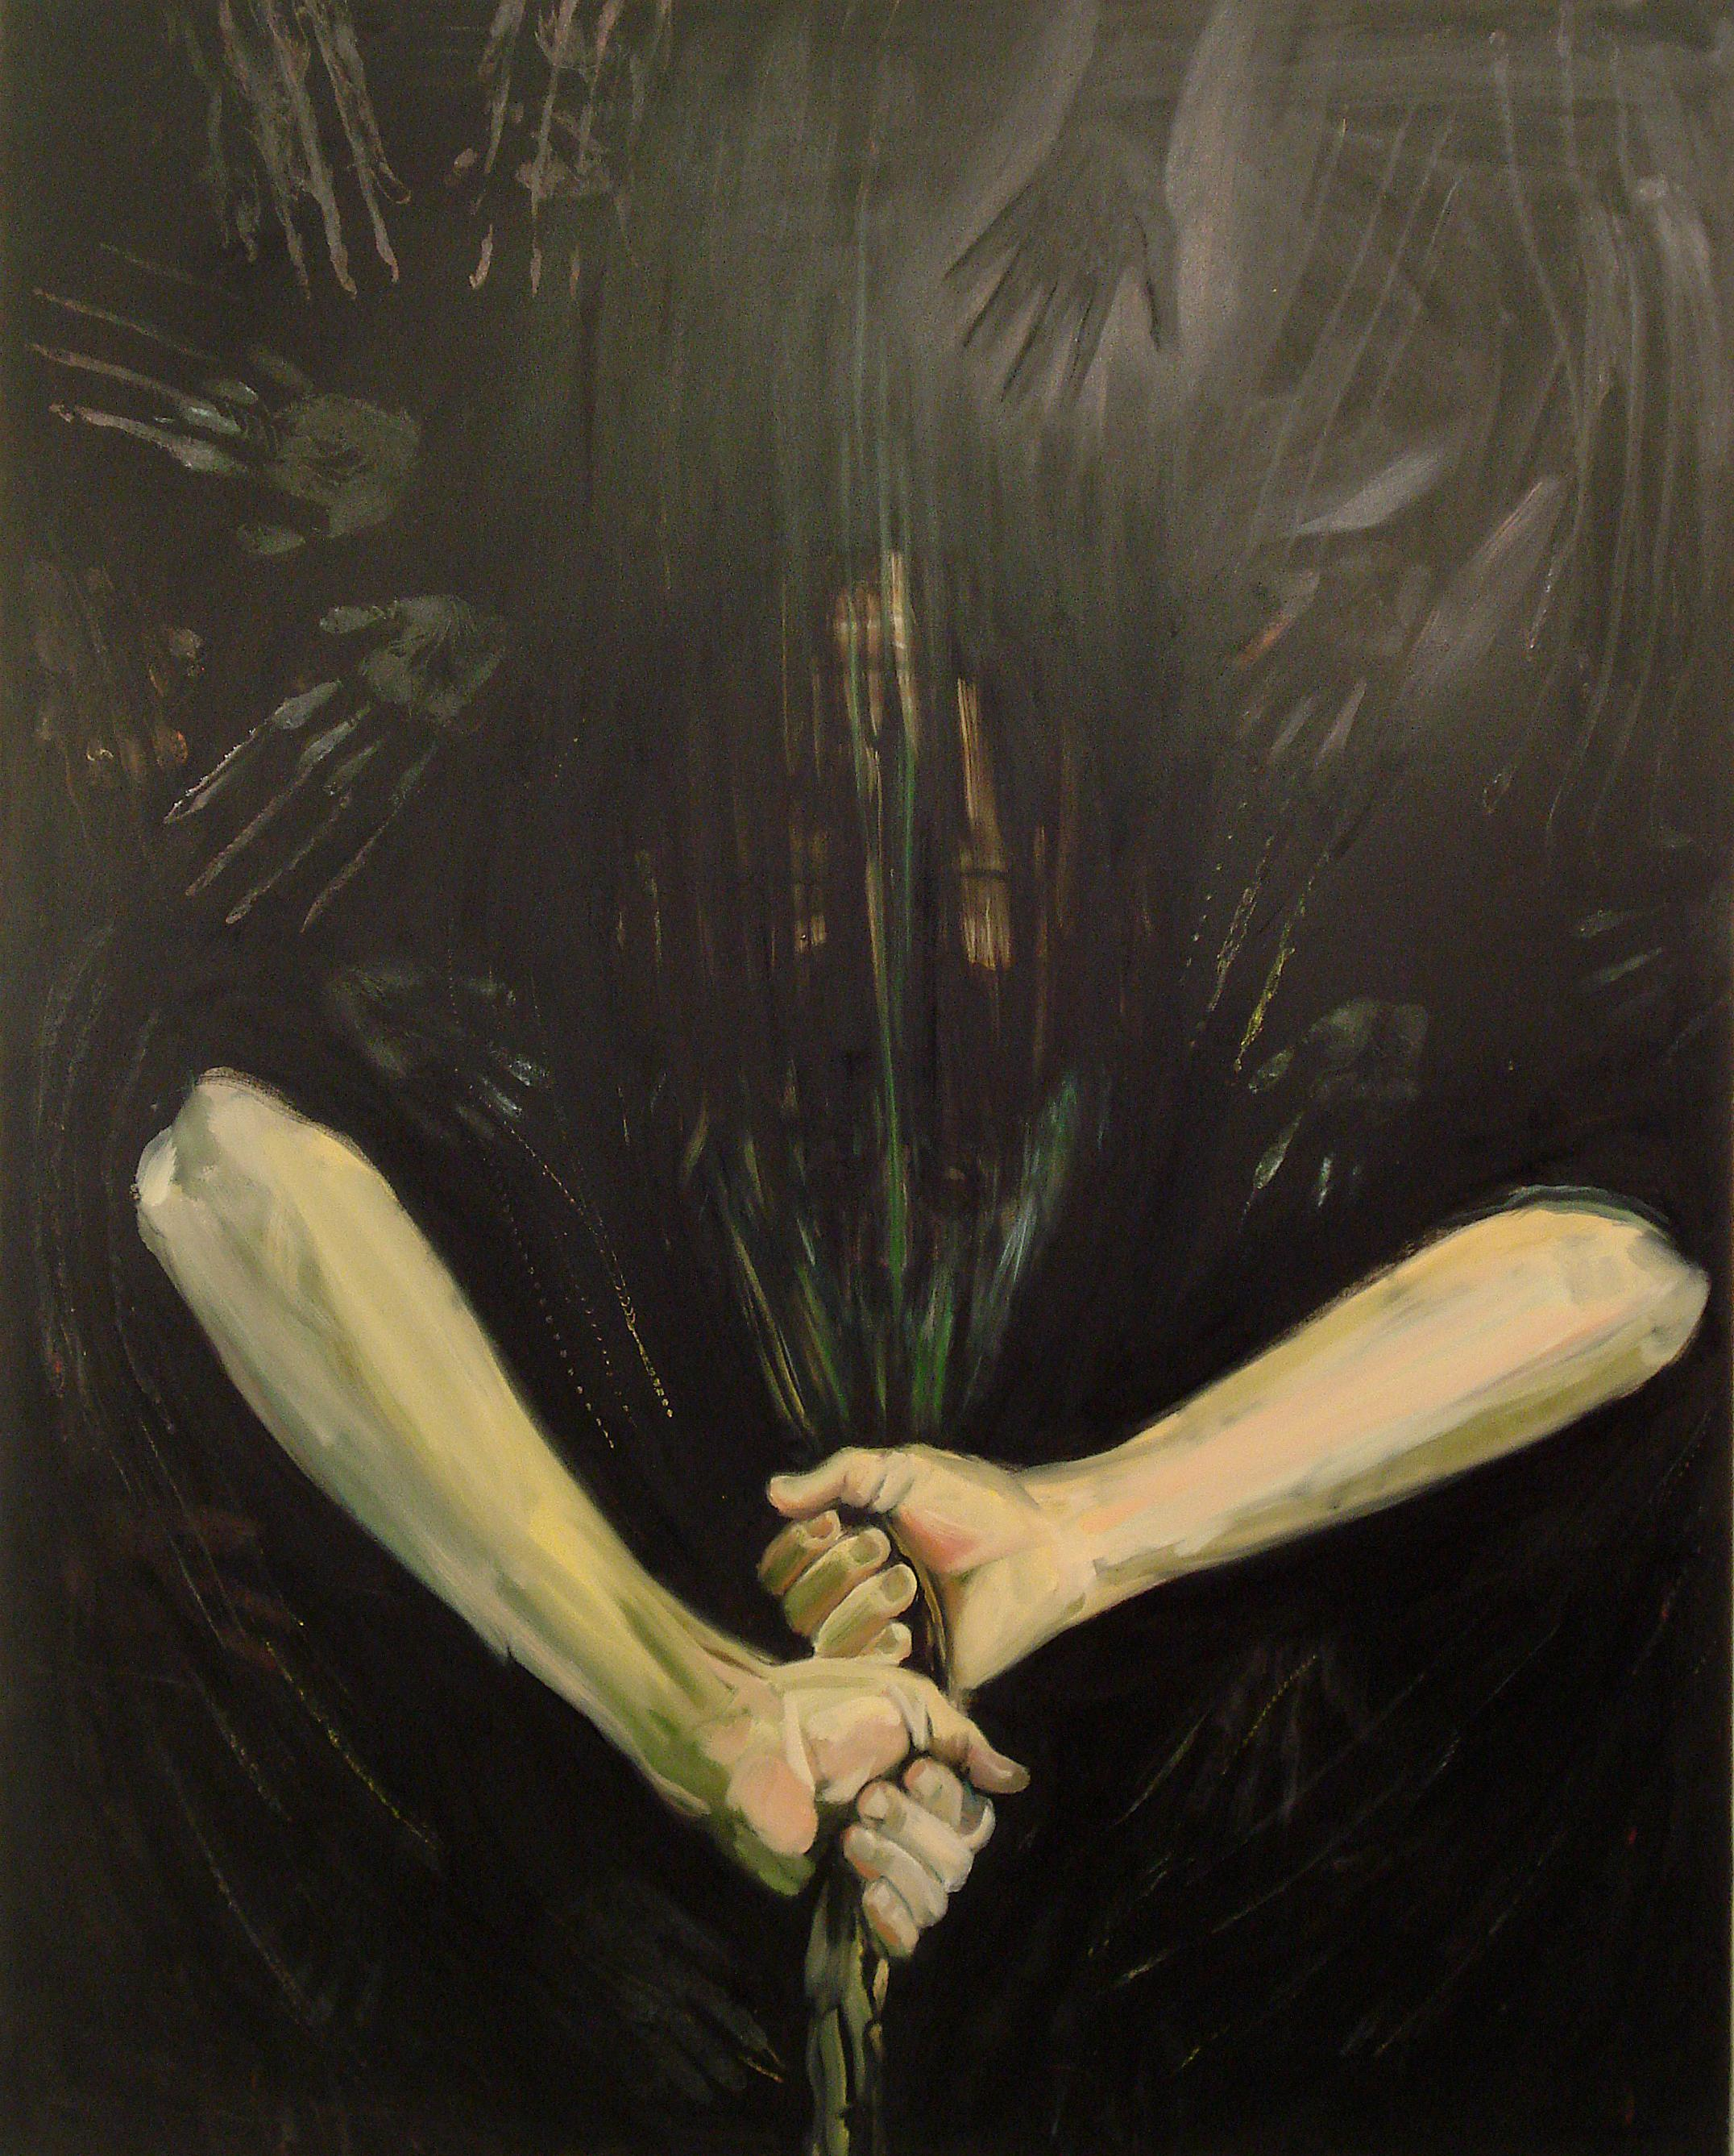 In Obscura, dark, symbolic, oil painting, mysterious, surrealistic hands